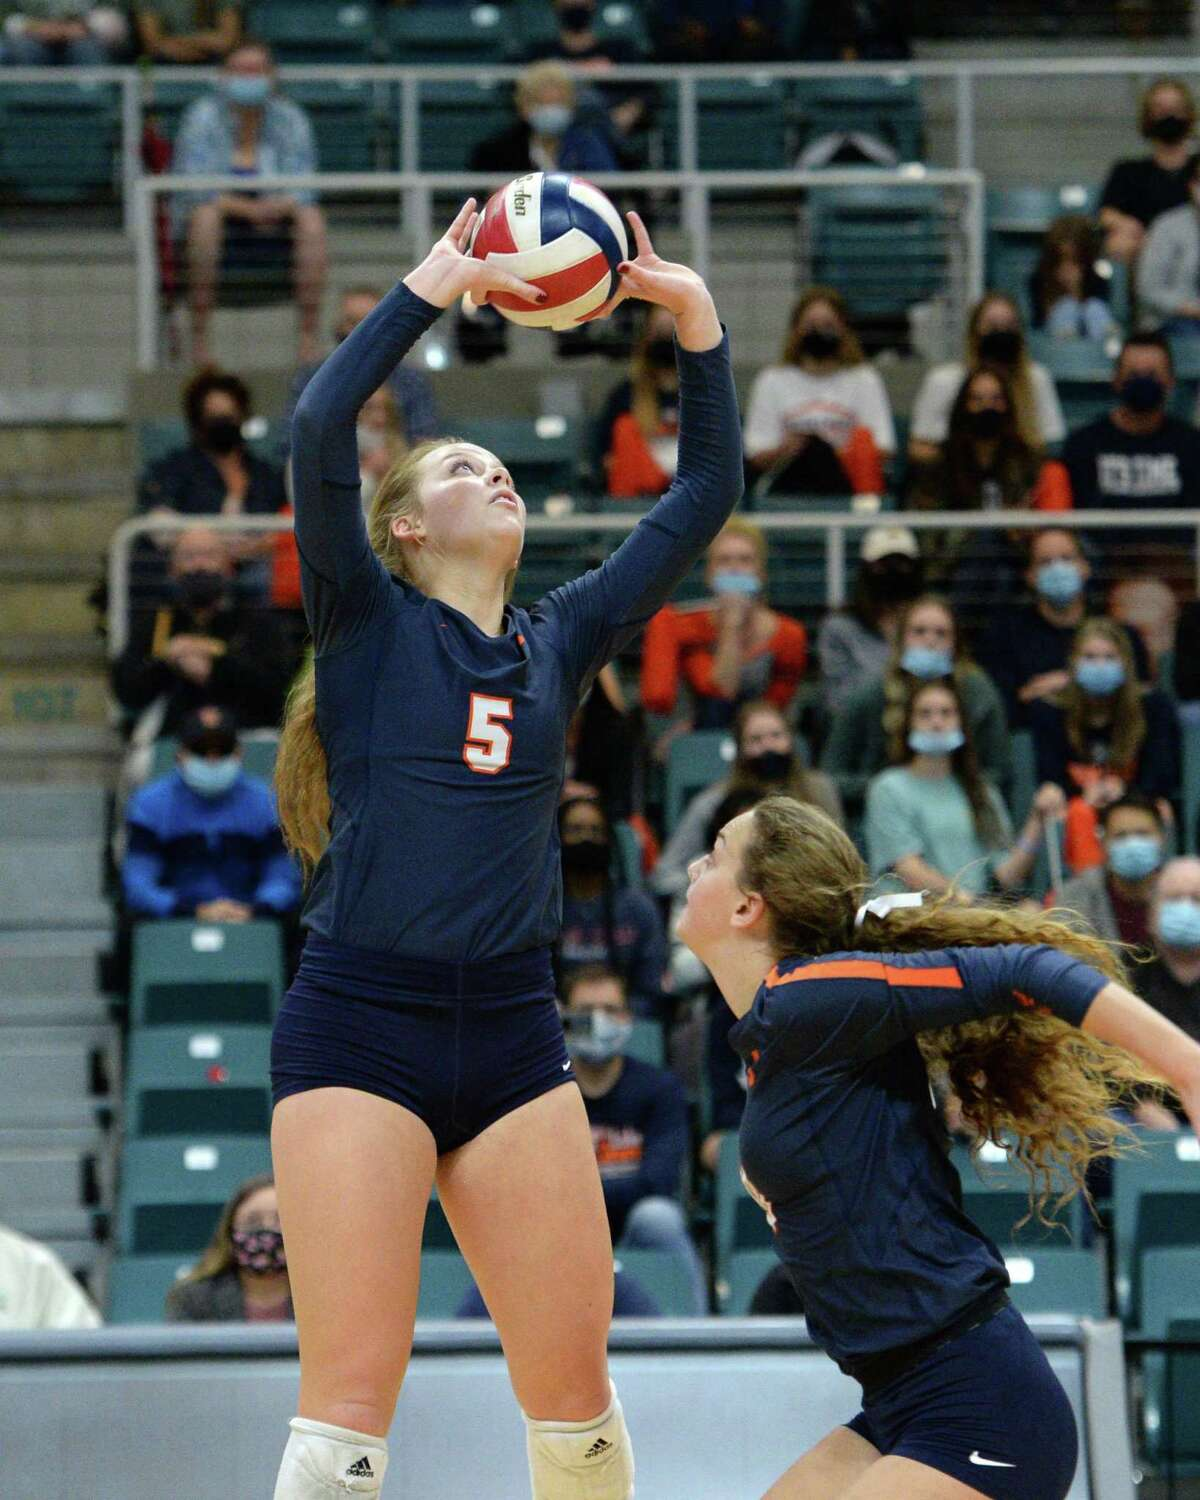 Casey Batenhorst (5) of Seven Lakes sets a ball during the first set of a 6A-III regional quarterfinal game between the Cinco Ranch Cougars and the Seven Lakes Spartans on Saturday, November 28, 2020 at Leonard Merrell Center, Katy, TX.